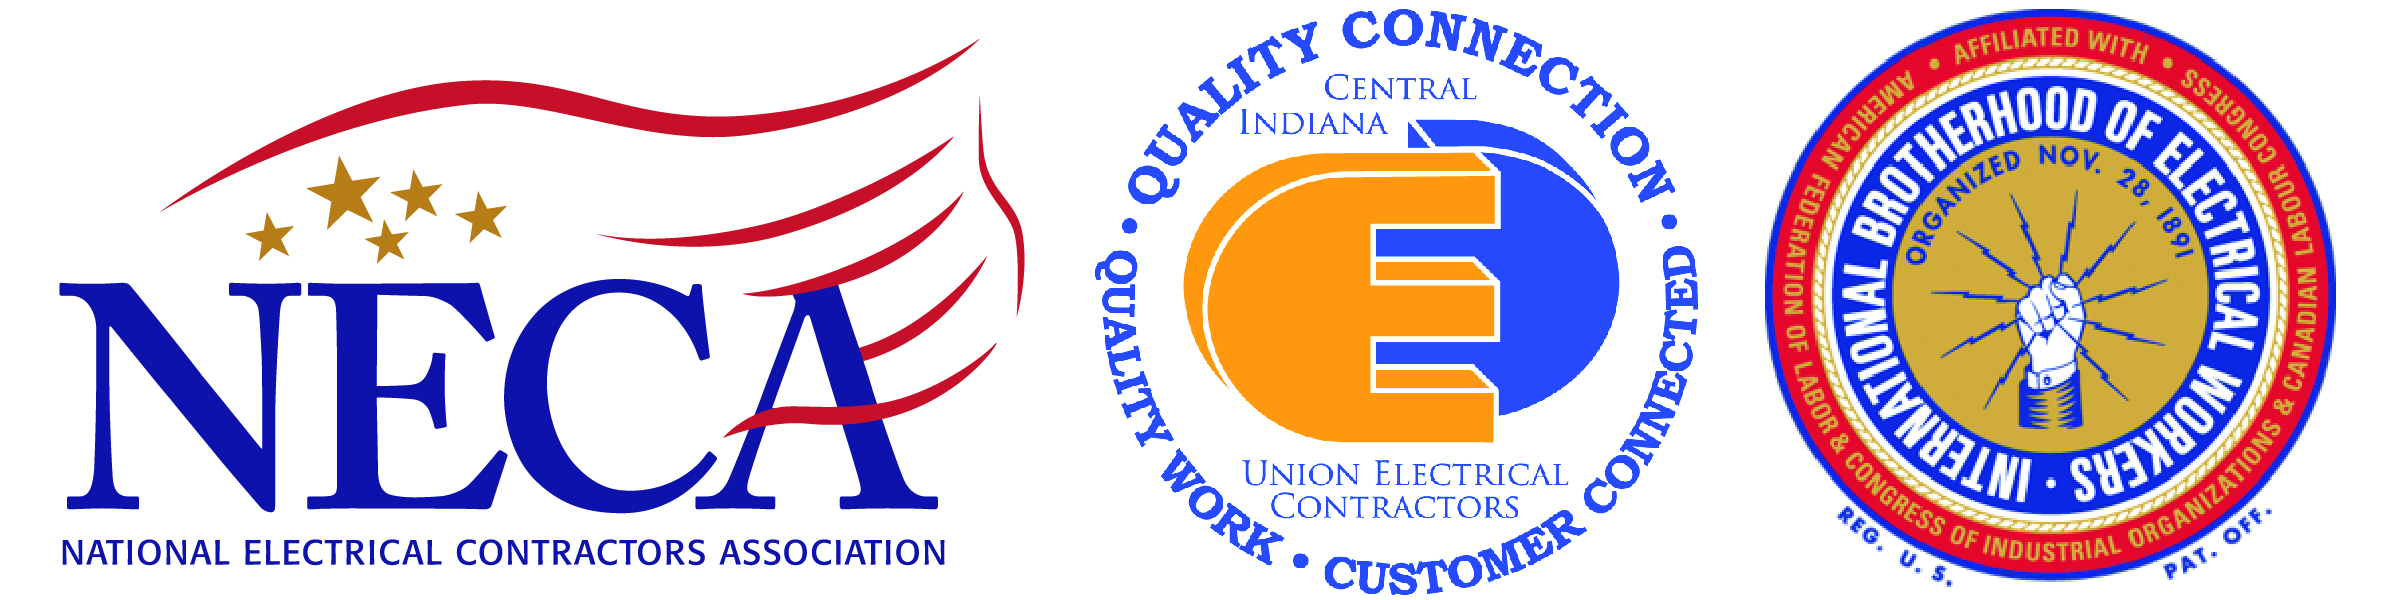 IBEW, NECA, QC Final Combined Logo-01.jpg